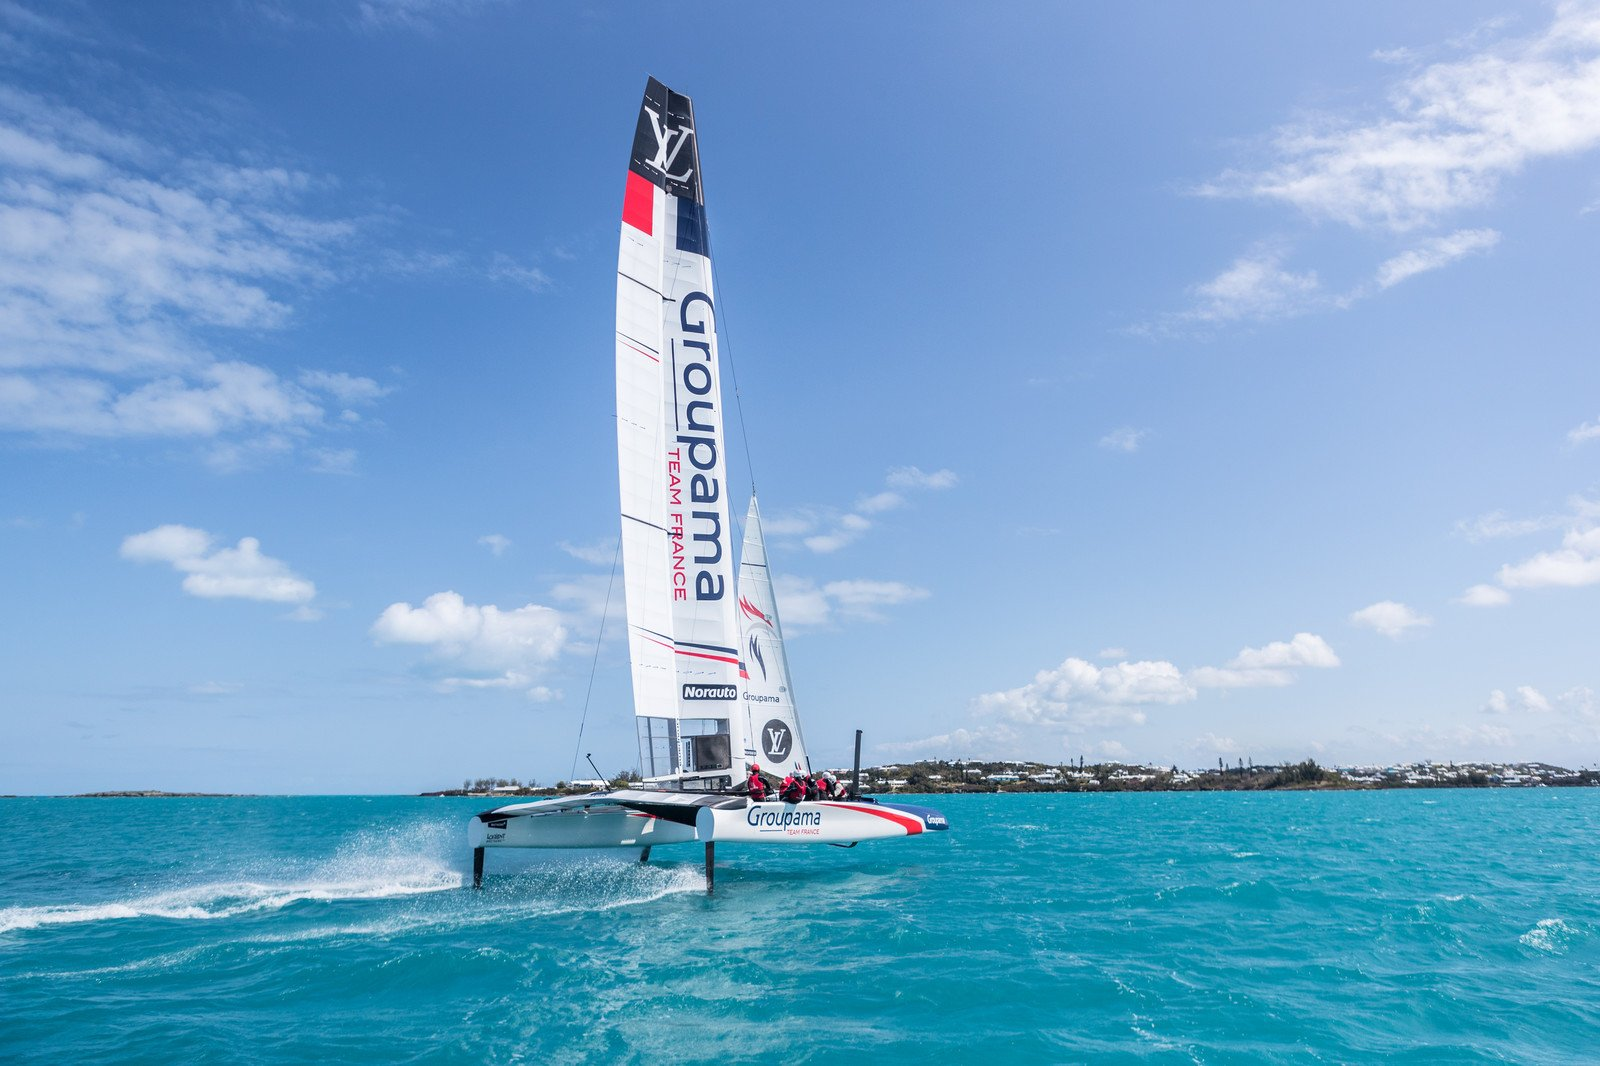 22/03/2017 - Hamilton (BMU) - 35th America's Cup Bermuda 2017 - Groupama Team France sailing their America's Cup Class (ACC) boat